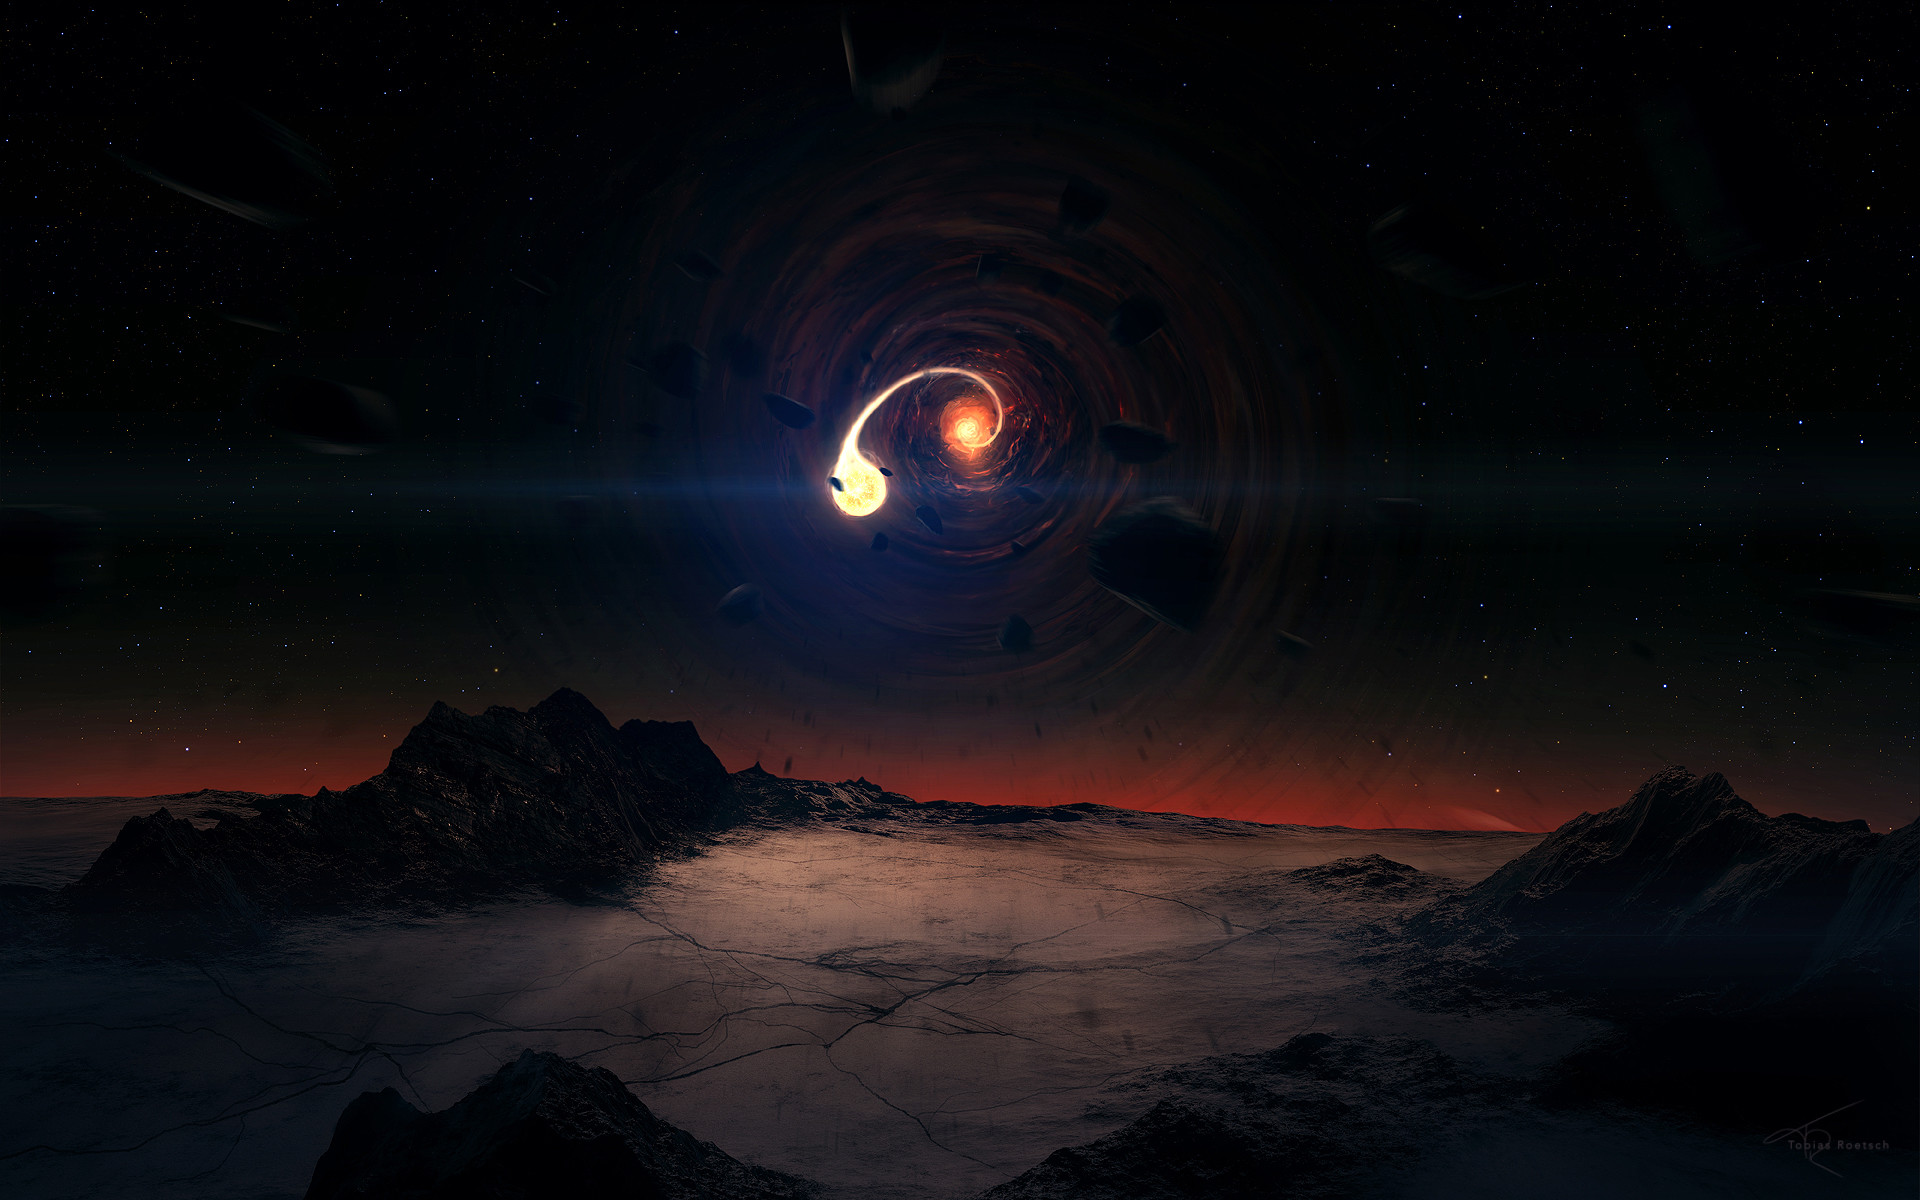 Res: 1920x1200, Author: Tobias Roetsch. Tags: Black Scene Hole